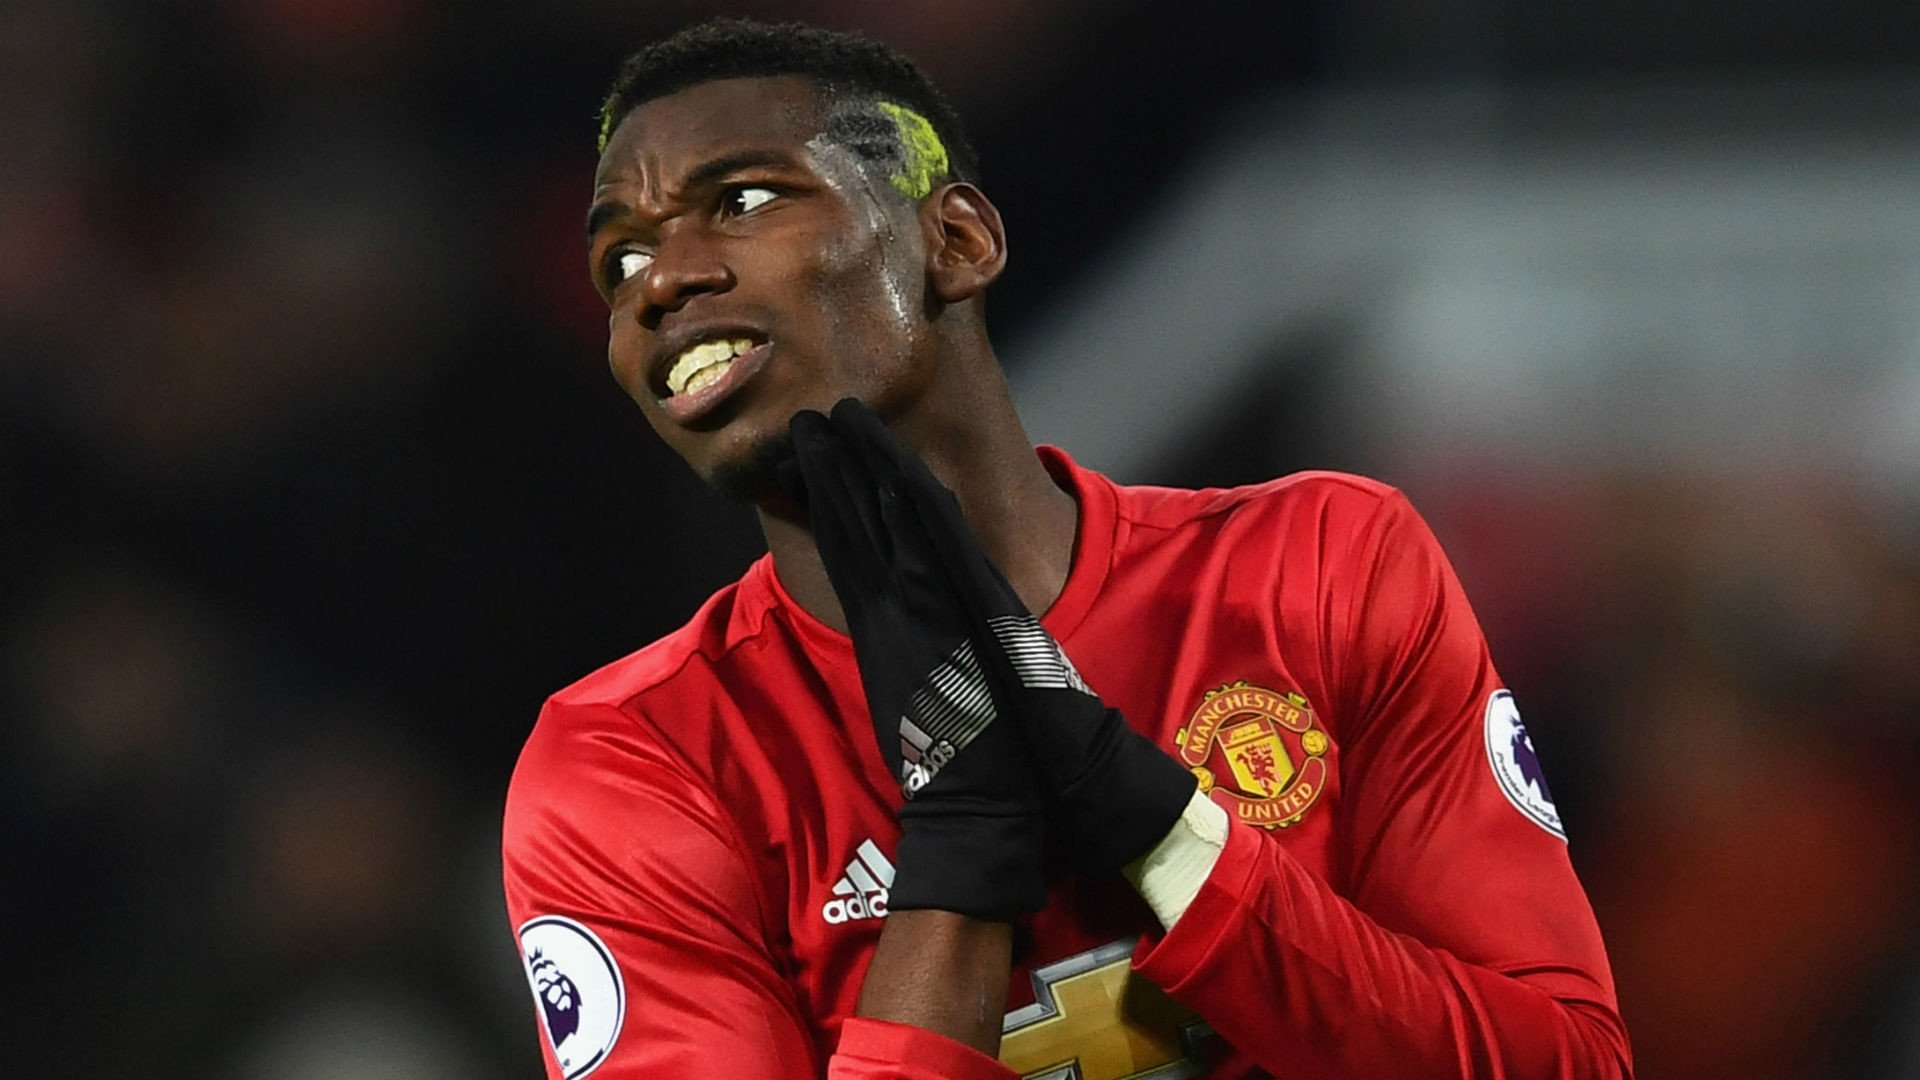 Res: 1920x1080, Paul Pogba Manchester United Liverpool